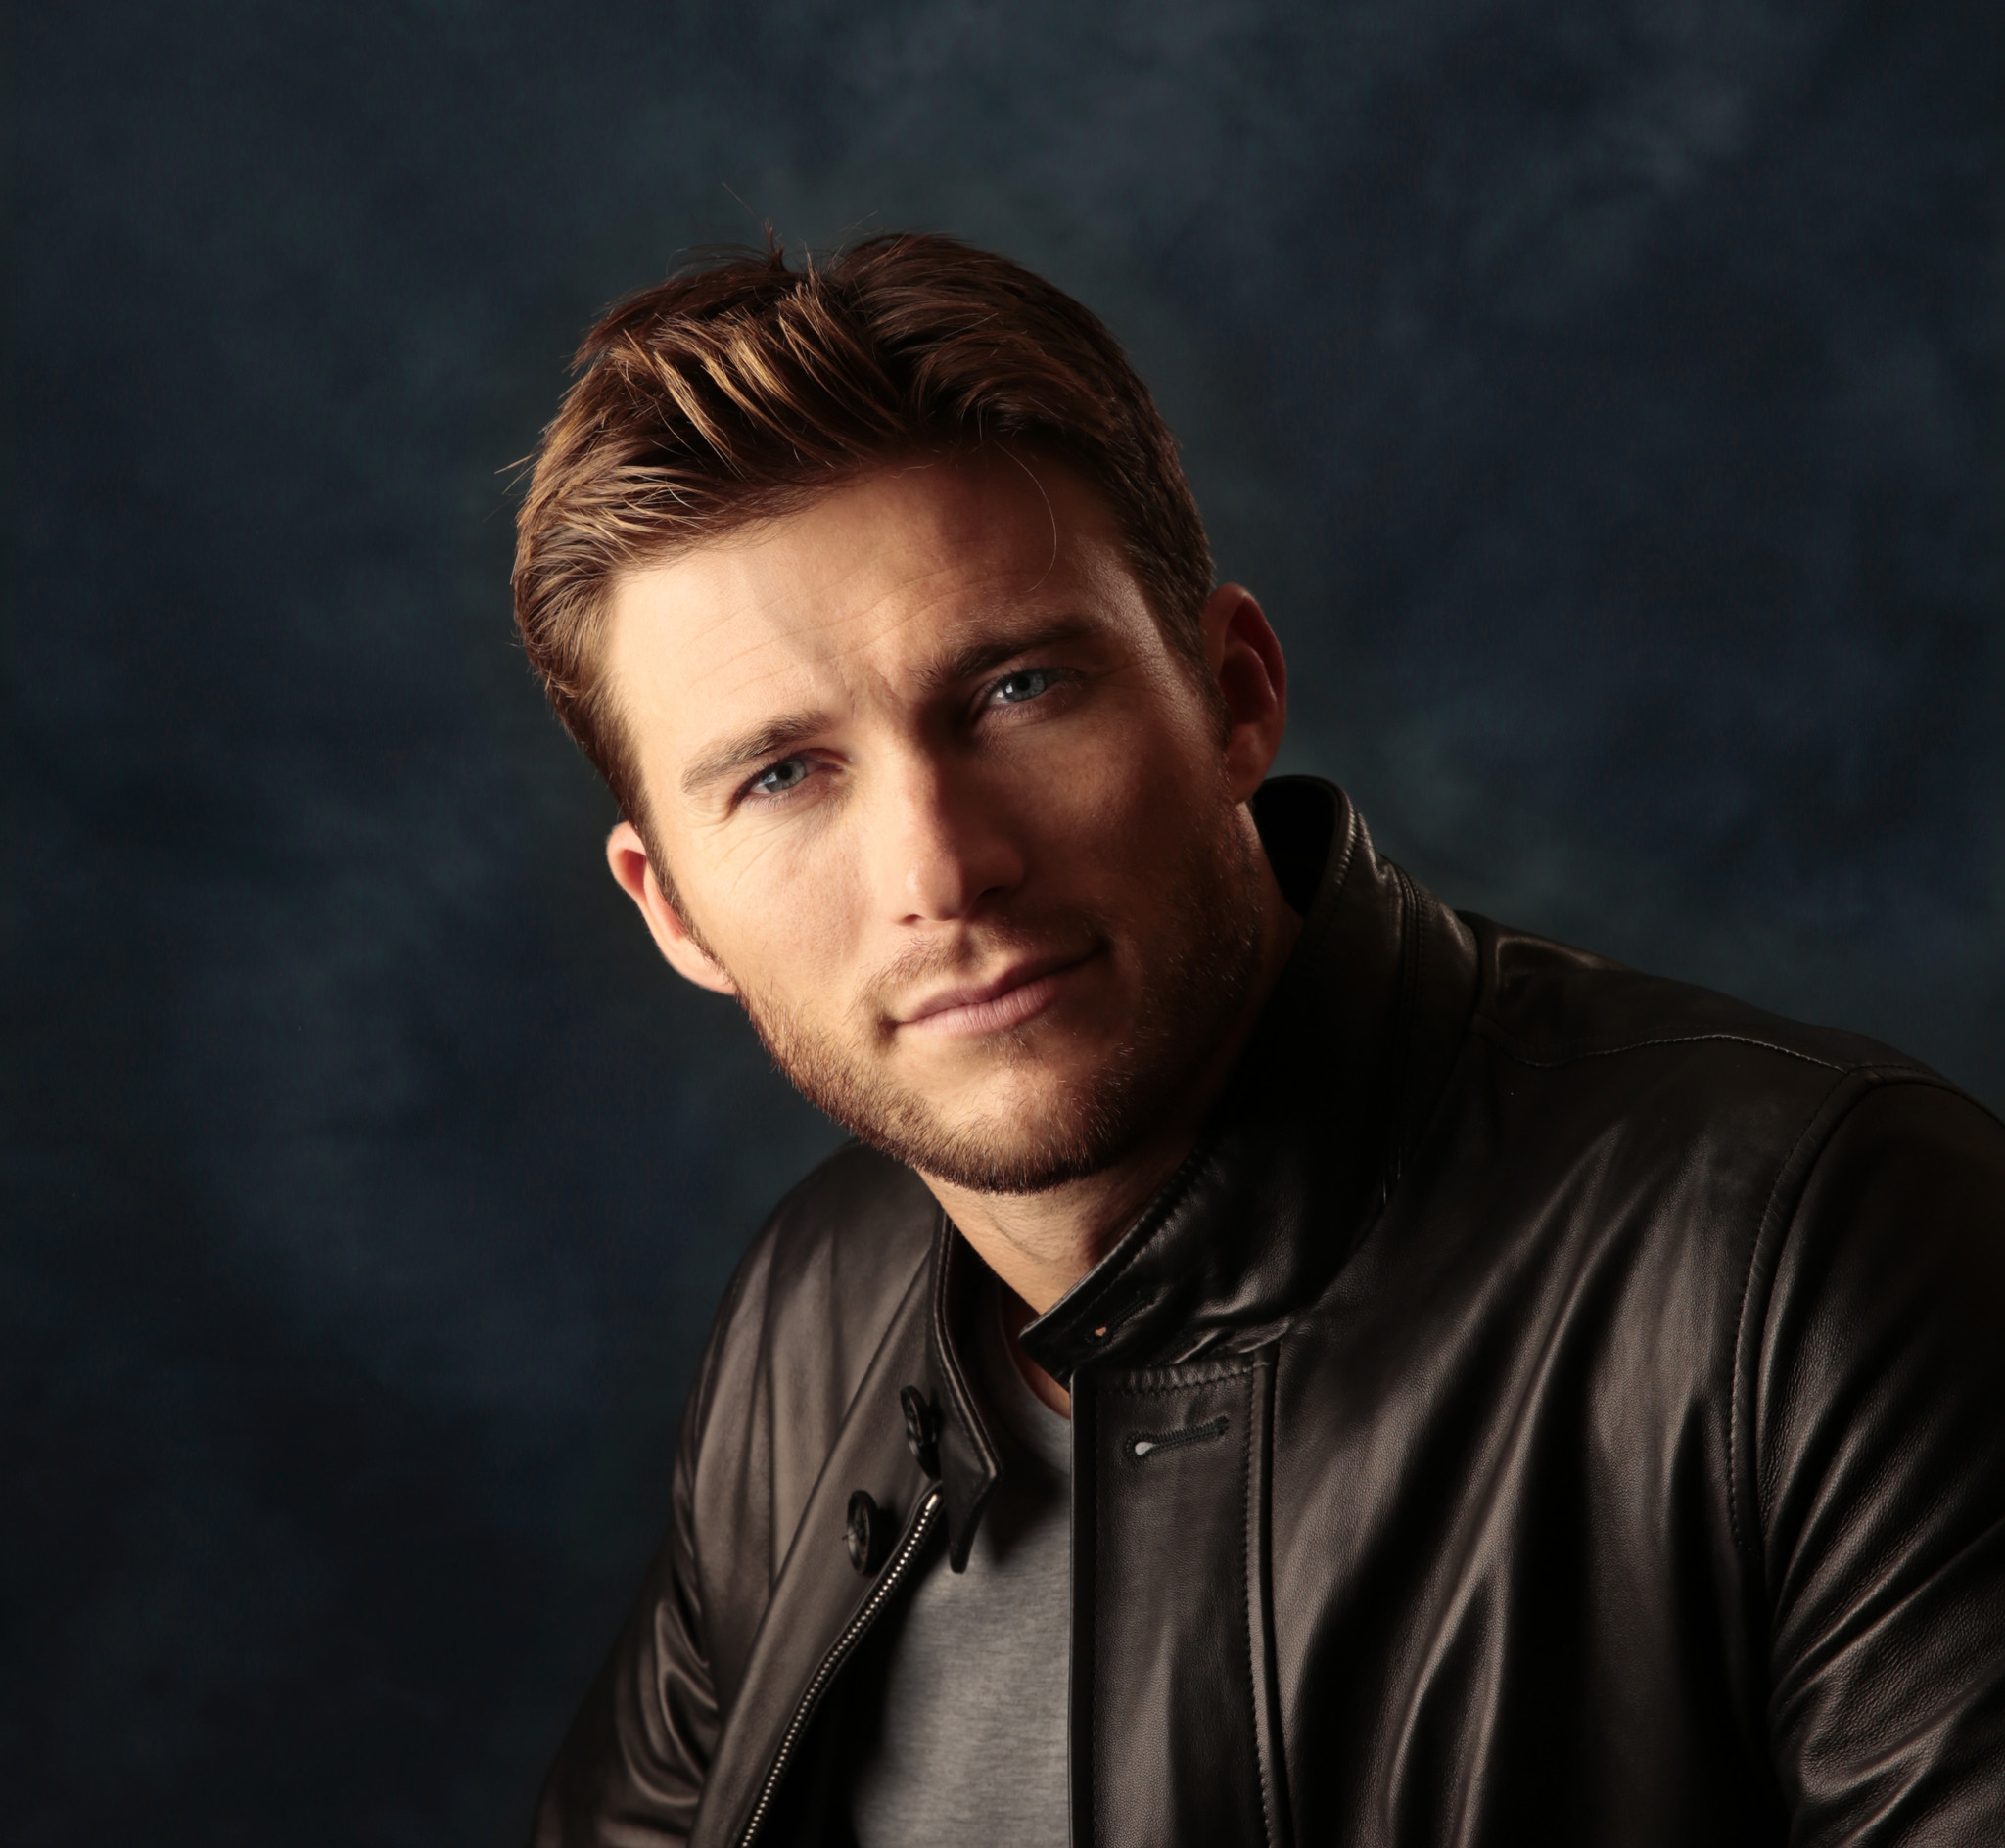 scott eastwood ashton kutcher cheated on demi moore with